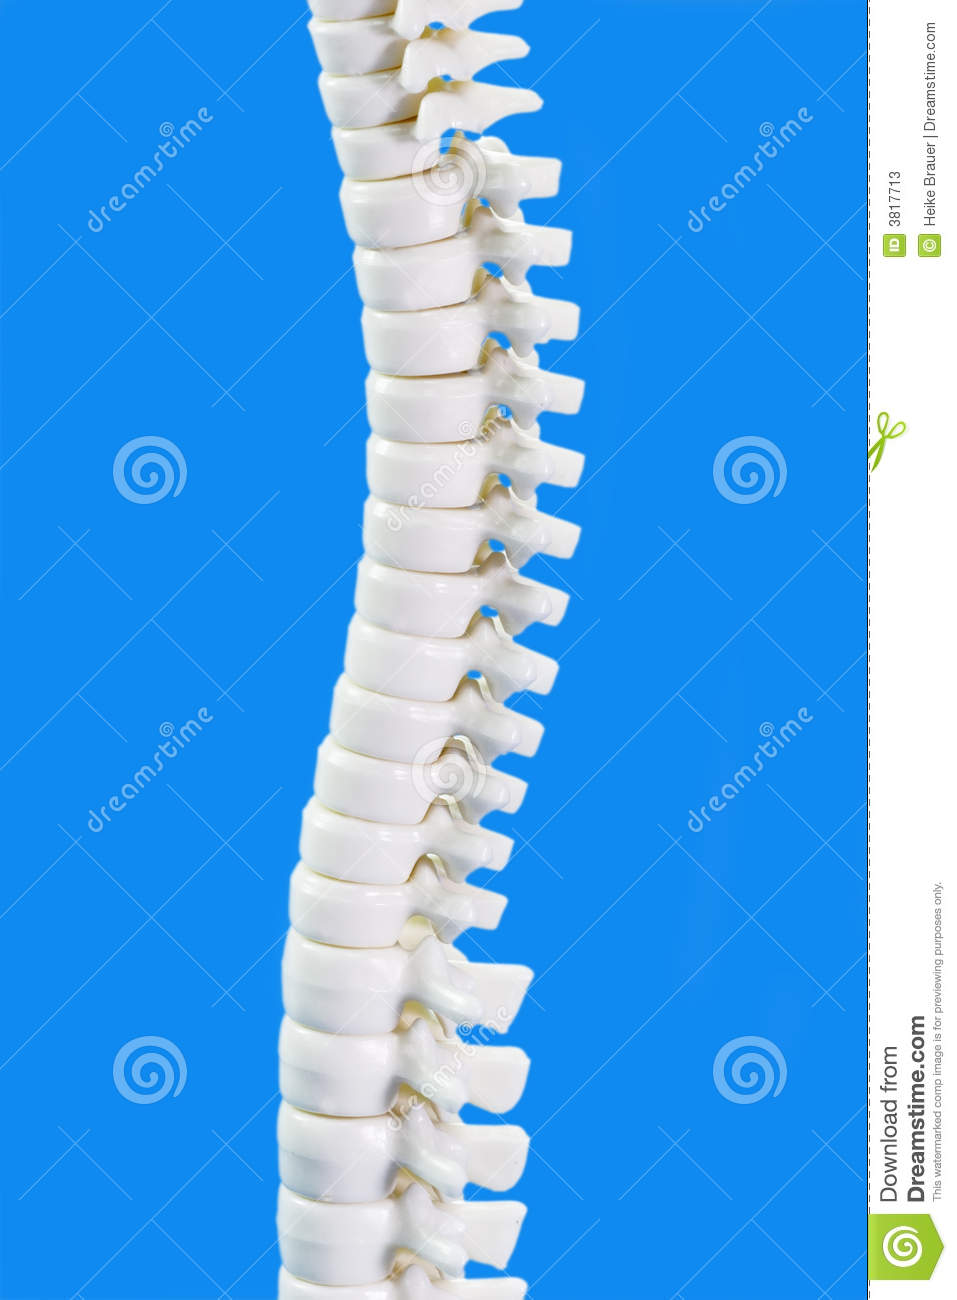 Stock Image Dreamstime Backbone In Detail Stock Image Image Of Anatomical